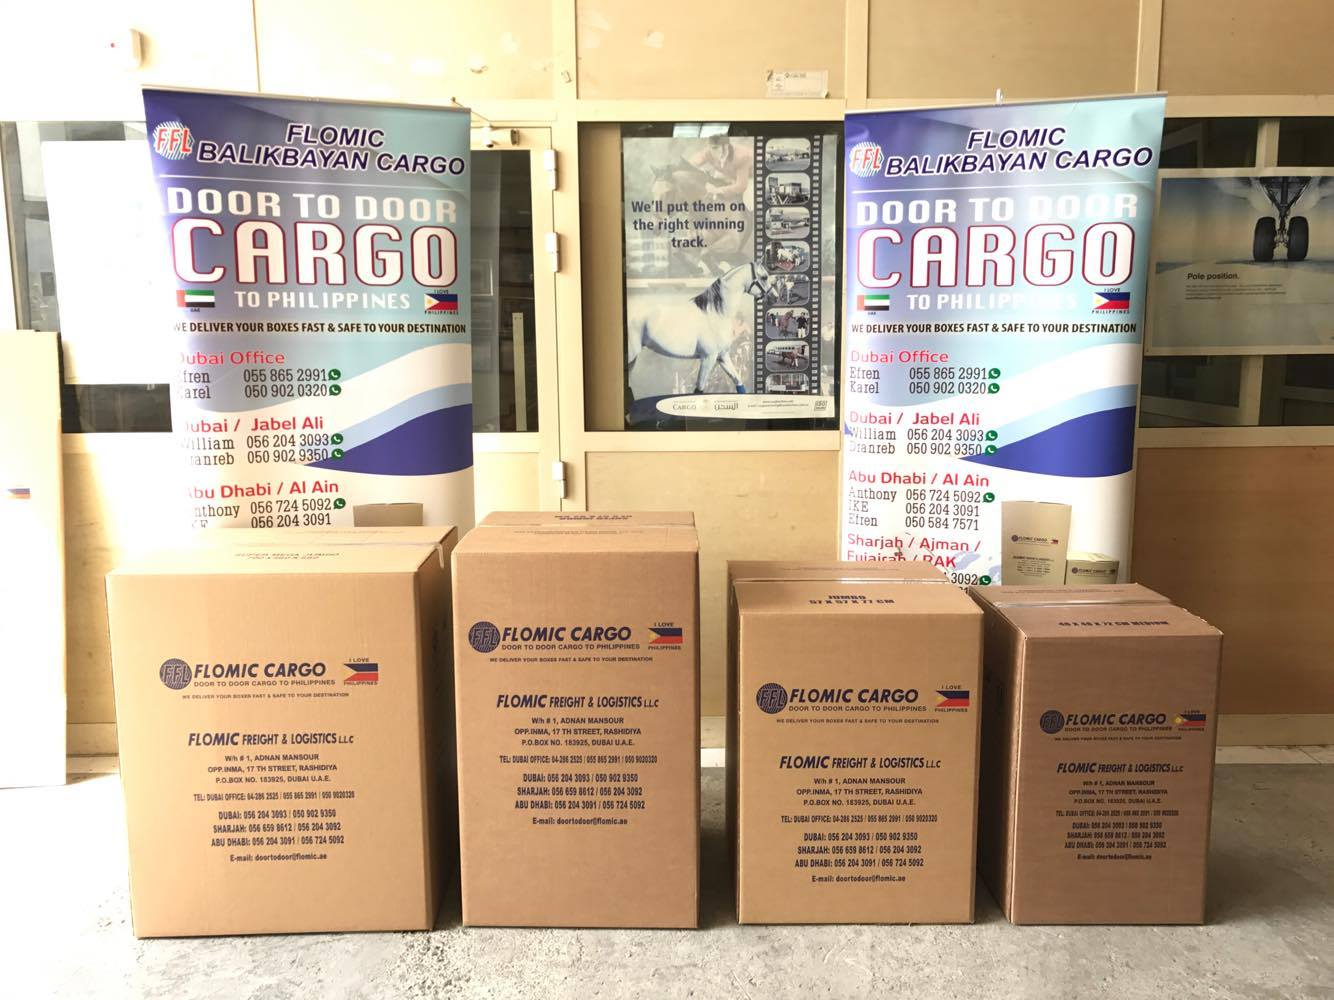 Reliable 'clearing agent' vital for fast balikbayan box